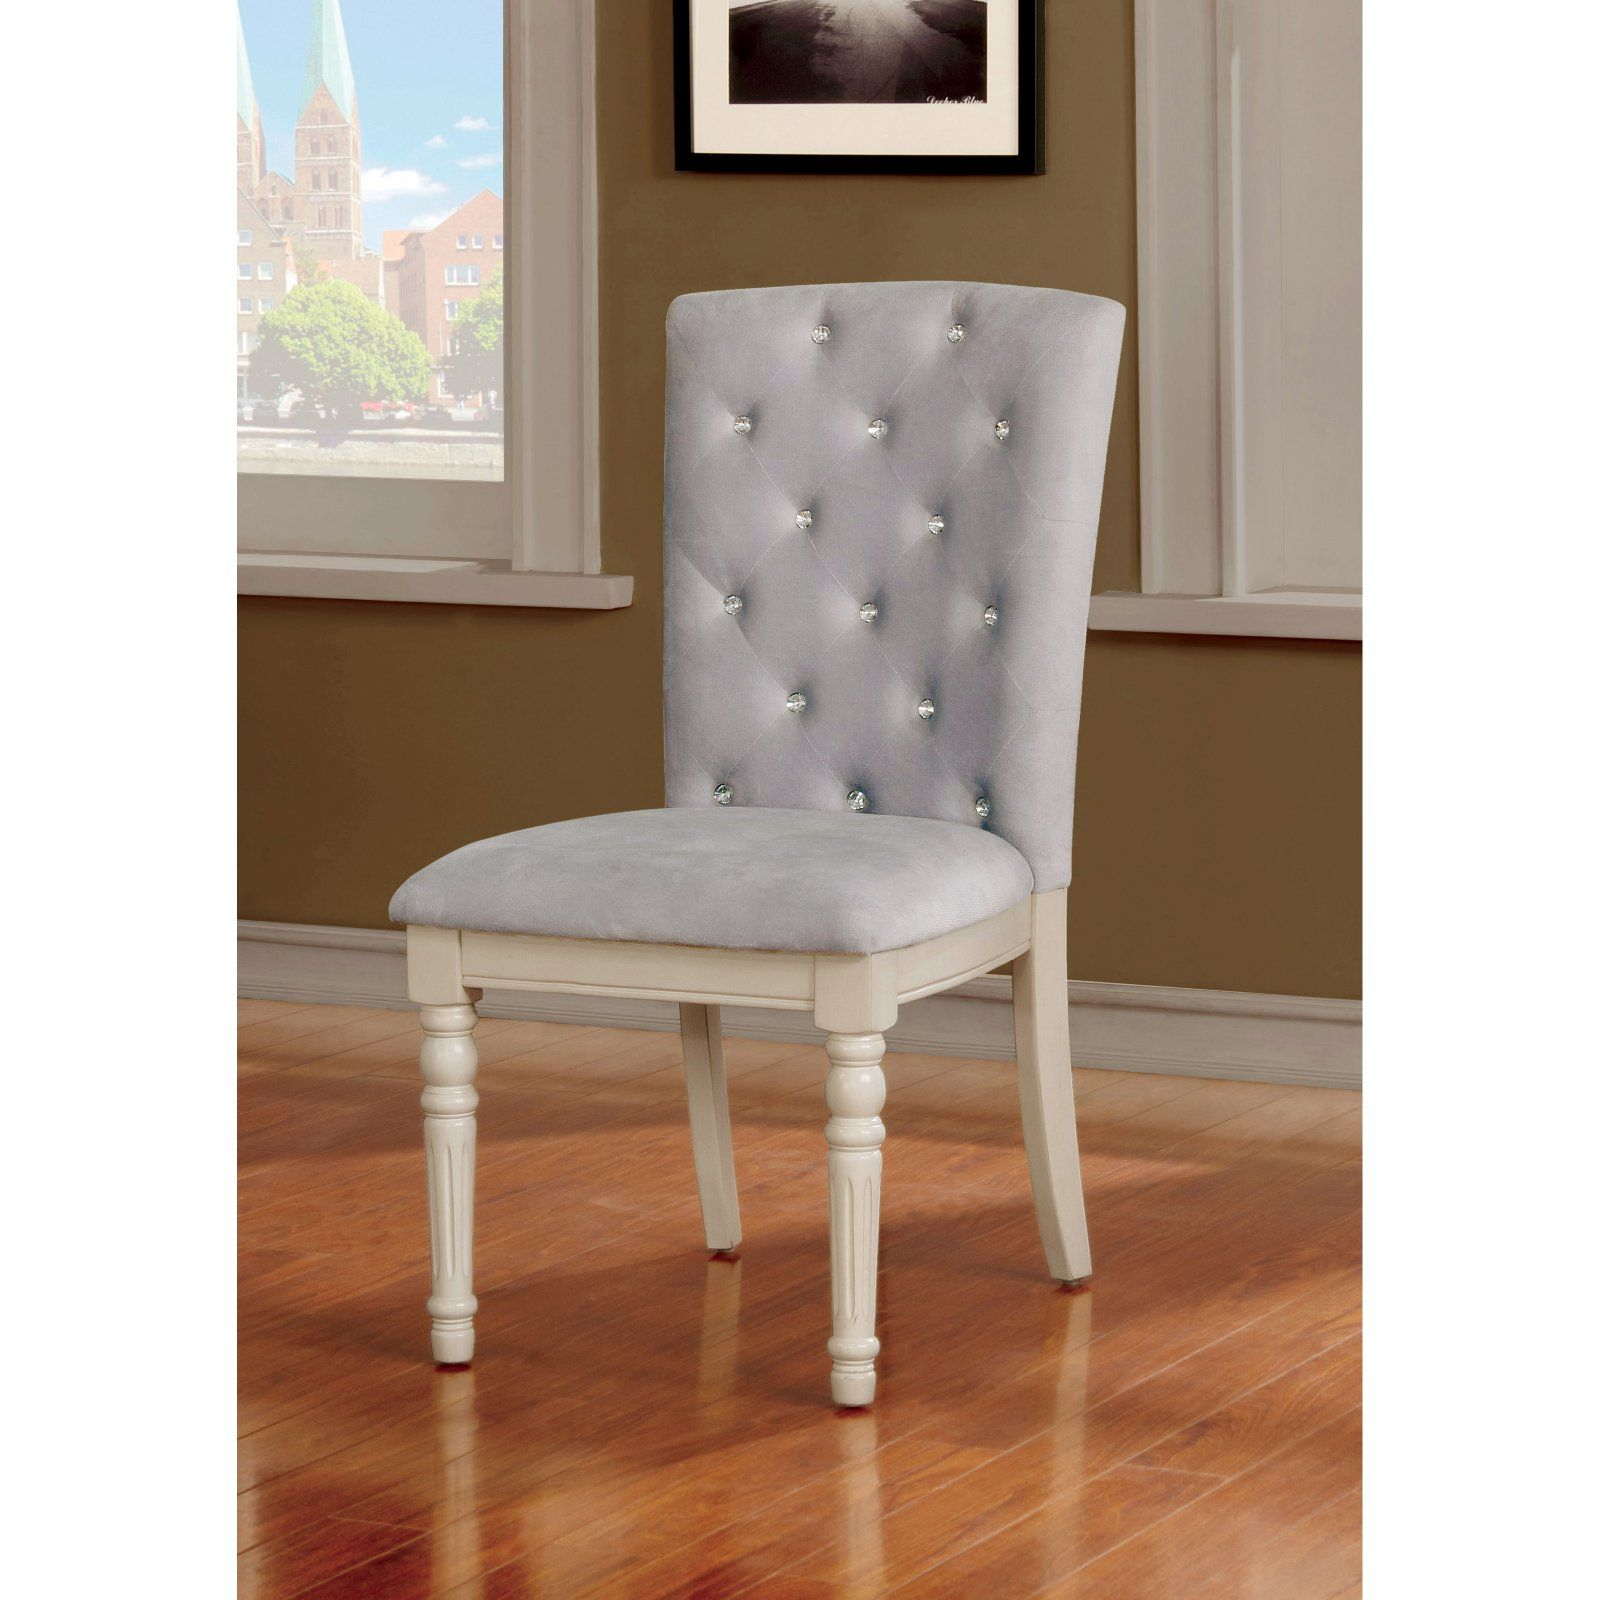 Furniture Of America Lombard Vintage Tufted Parsons Dining Chair Set Of 2 Parsons Dining Chairs Upholstered Dining Chairs